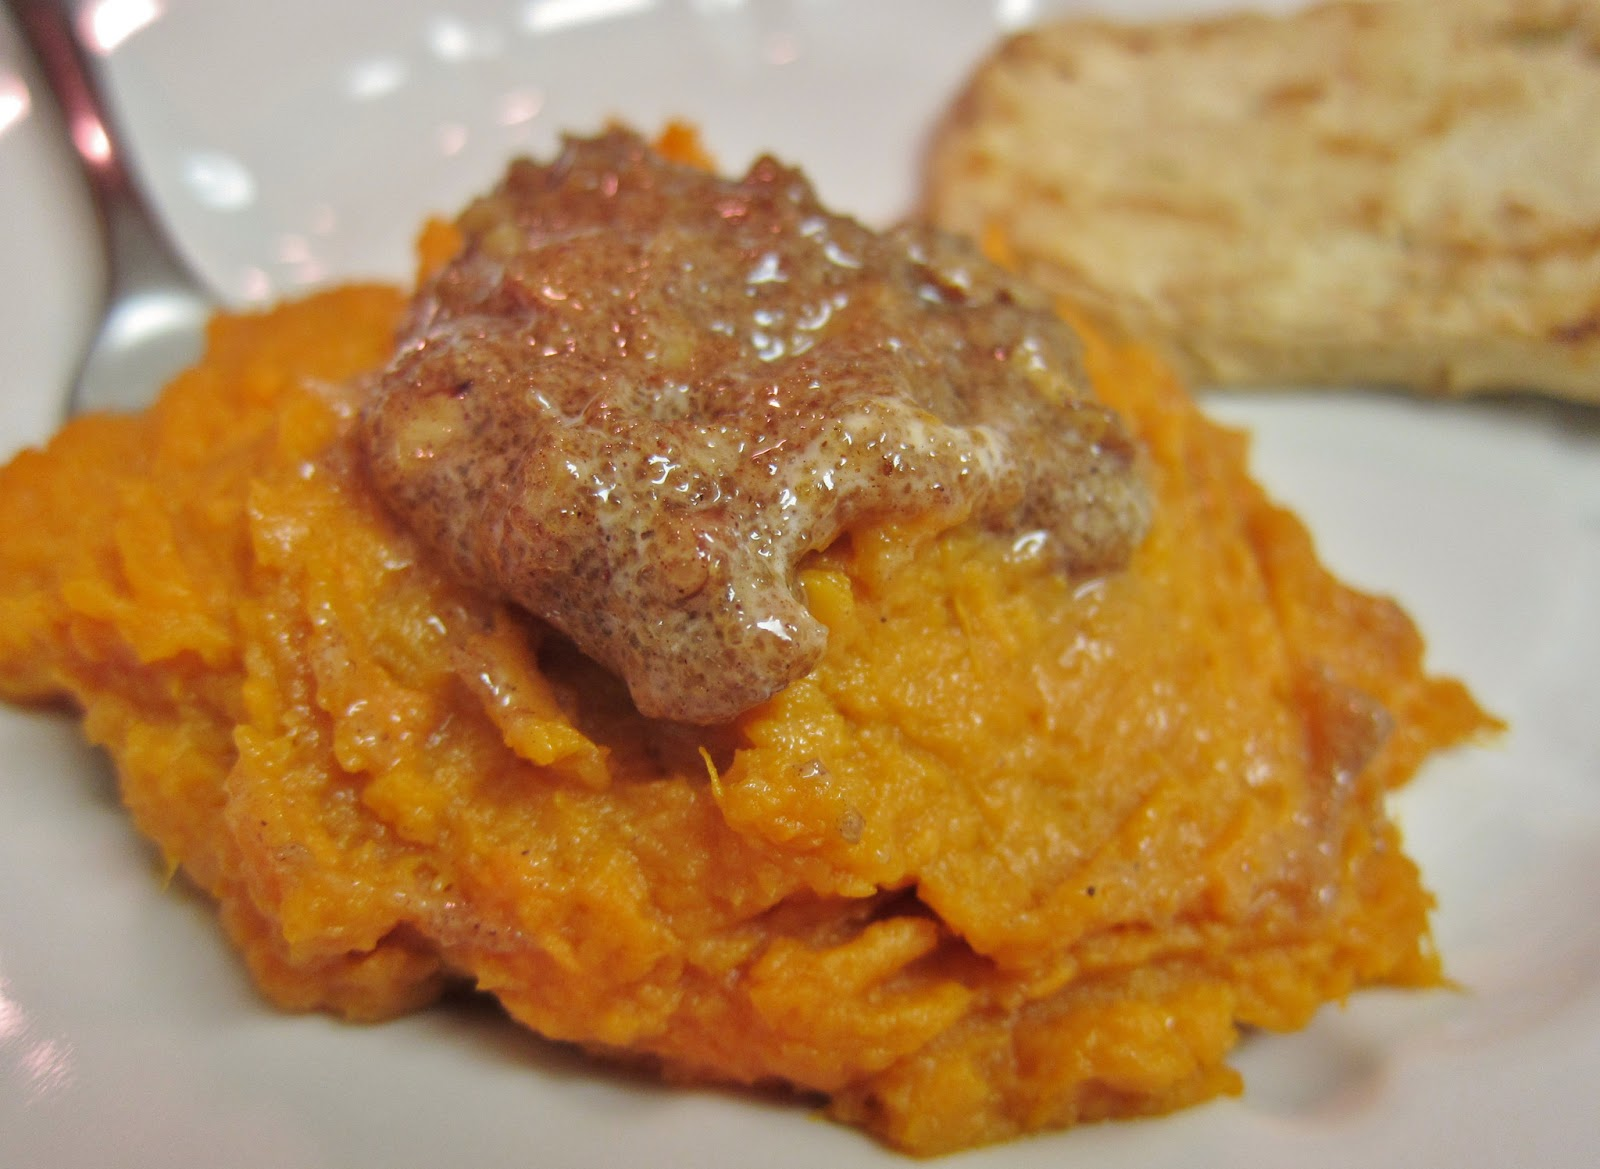 The Vegan Chronicle: Mashed Sweet Potatoes with Pecan Butter